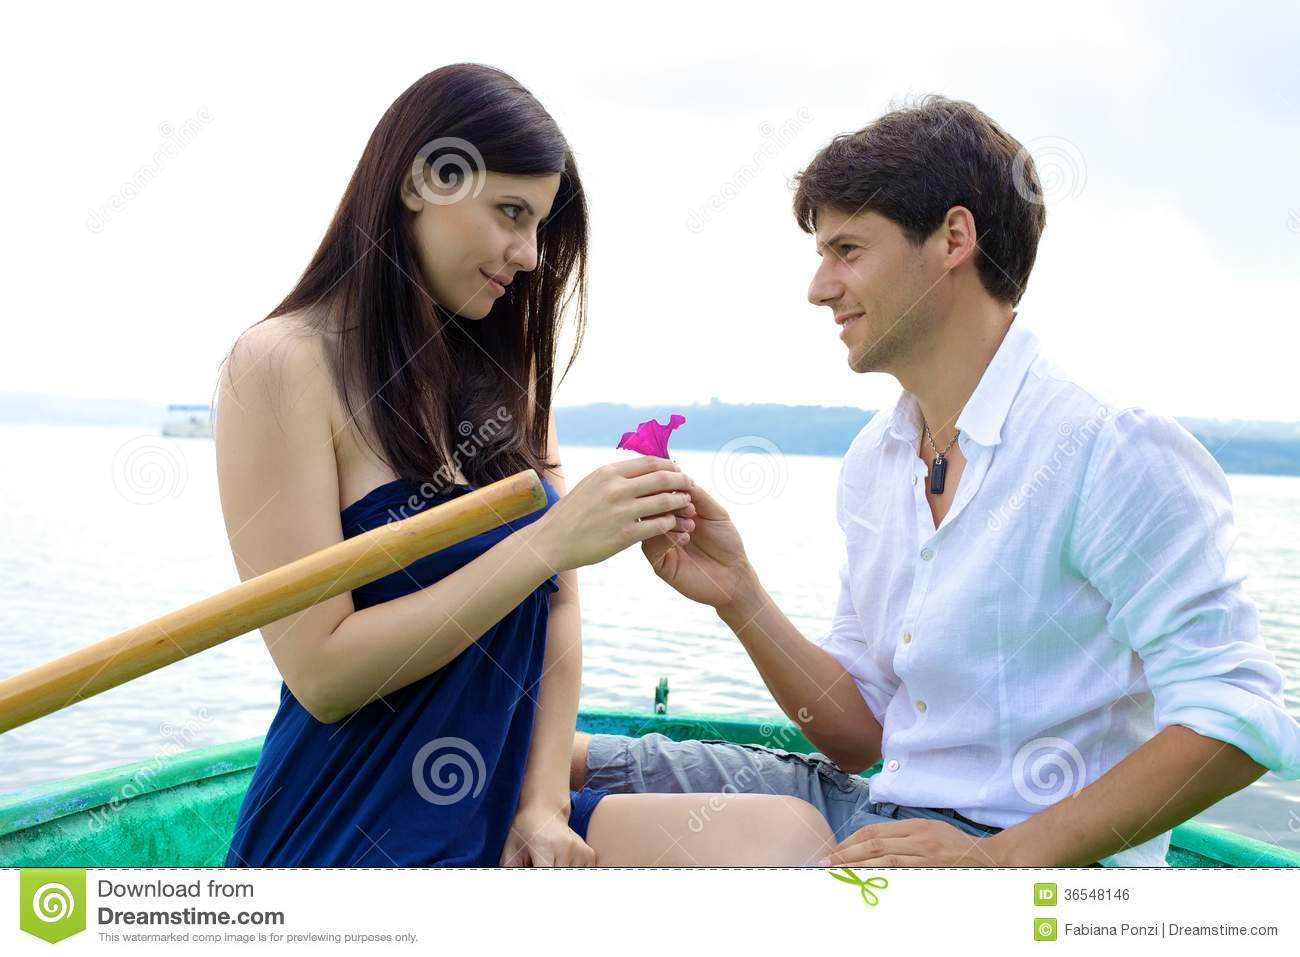 Girlfriend Love Wallpaper : Boyfriend Donating Pink Flower To Girlfriend In Love Stock Photo - Image: 36548146